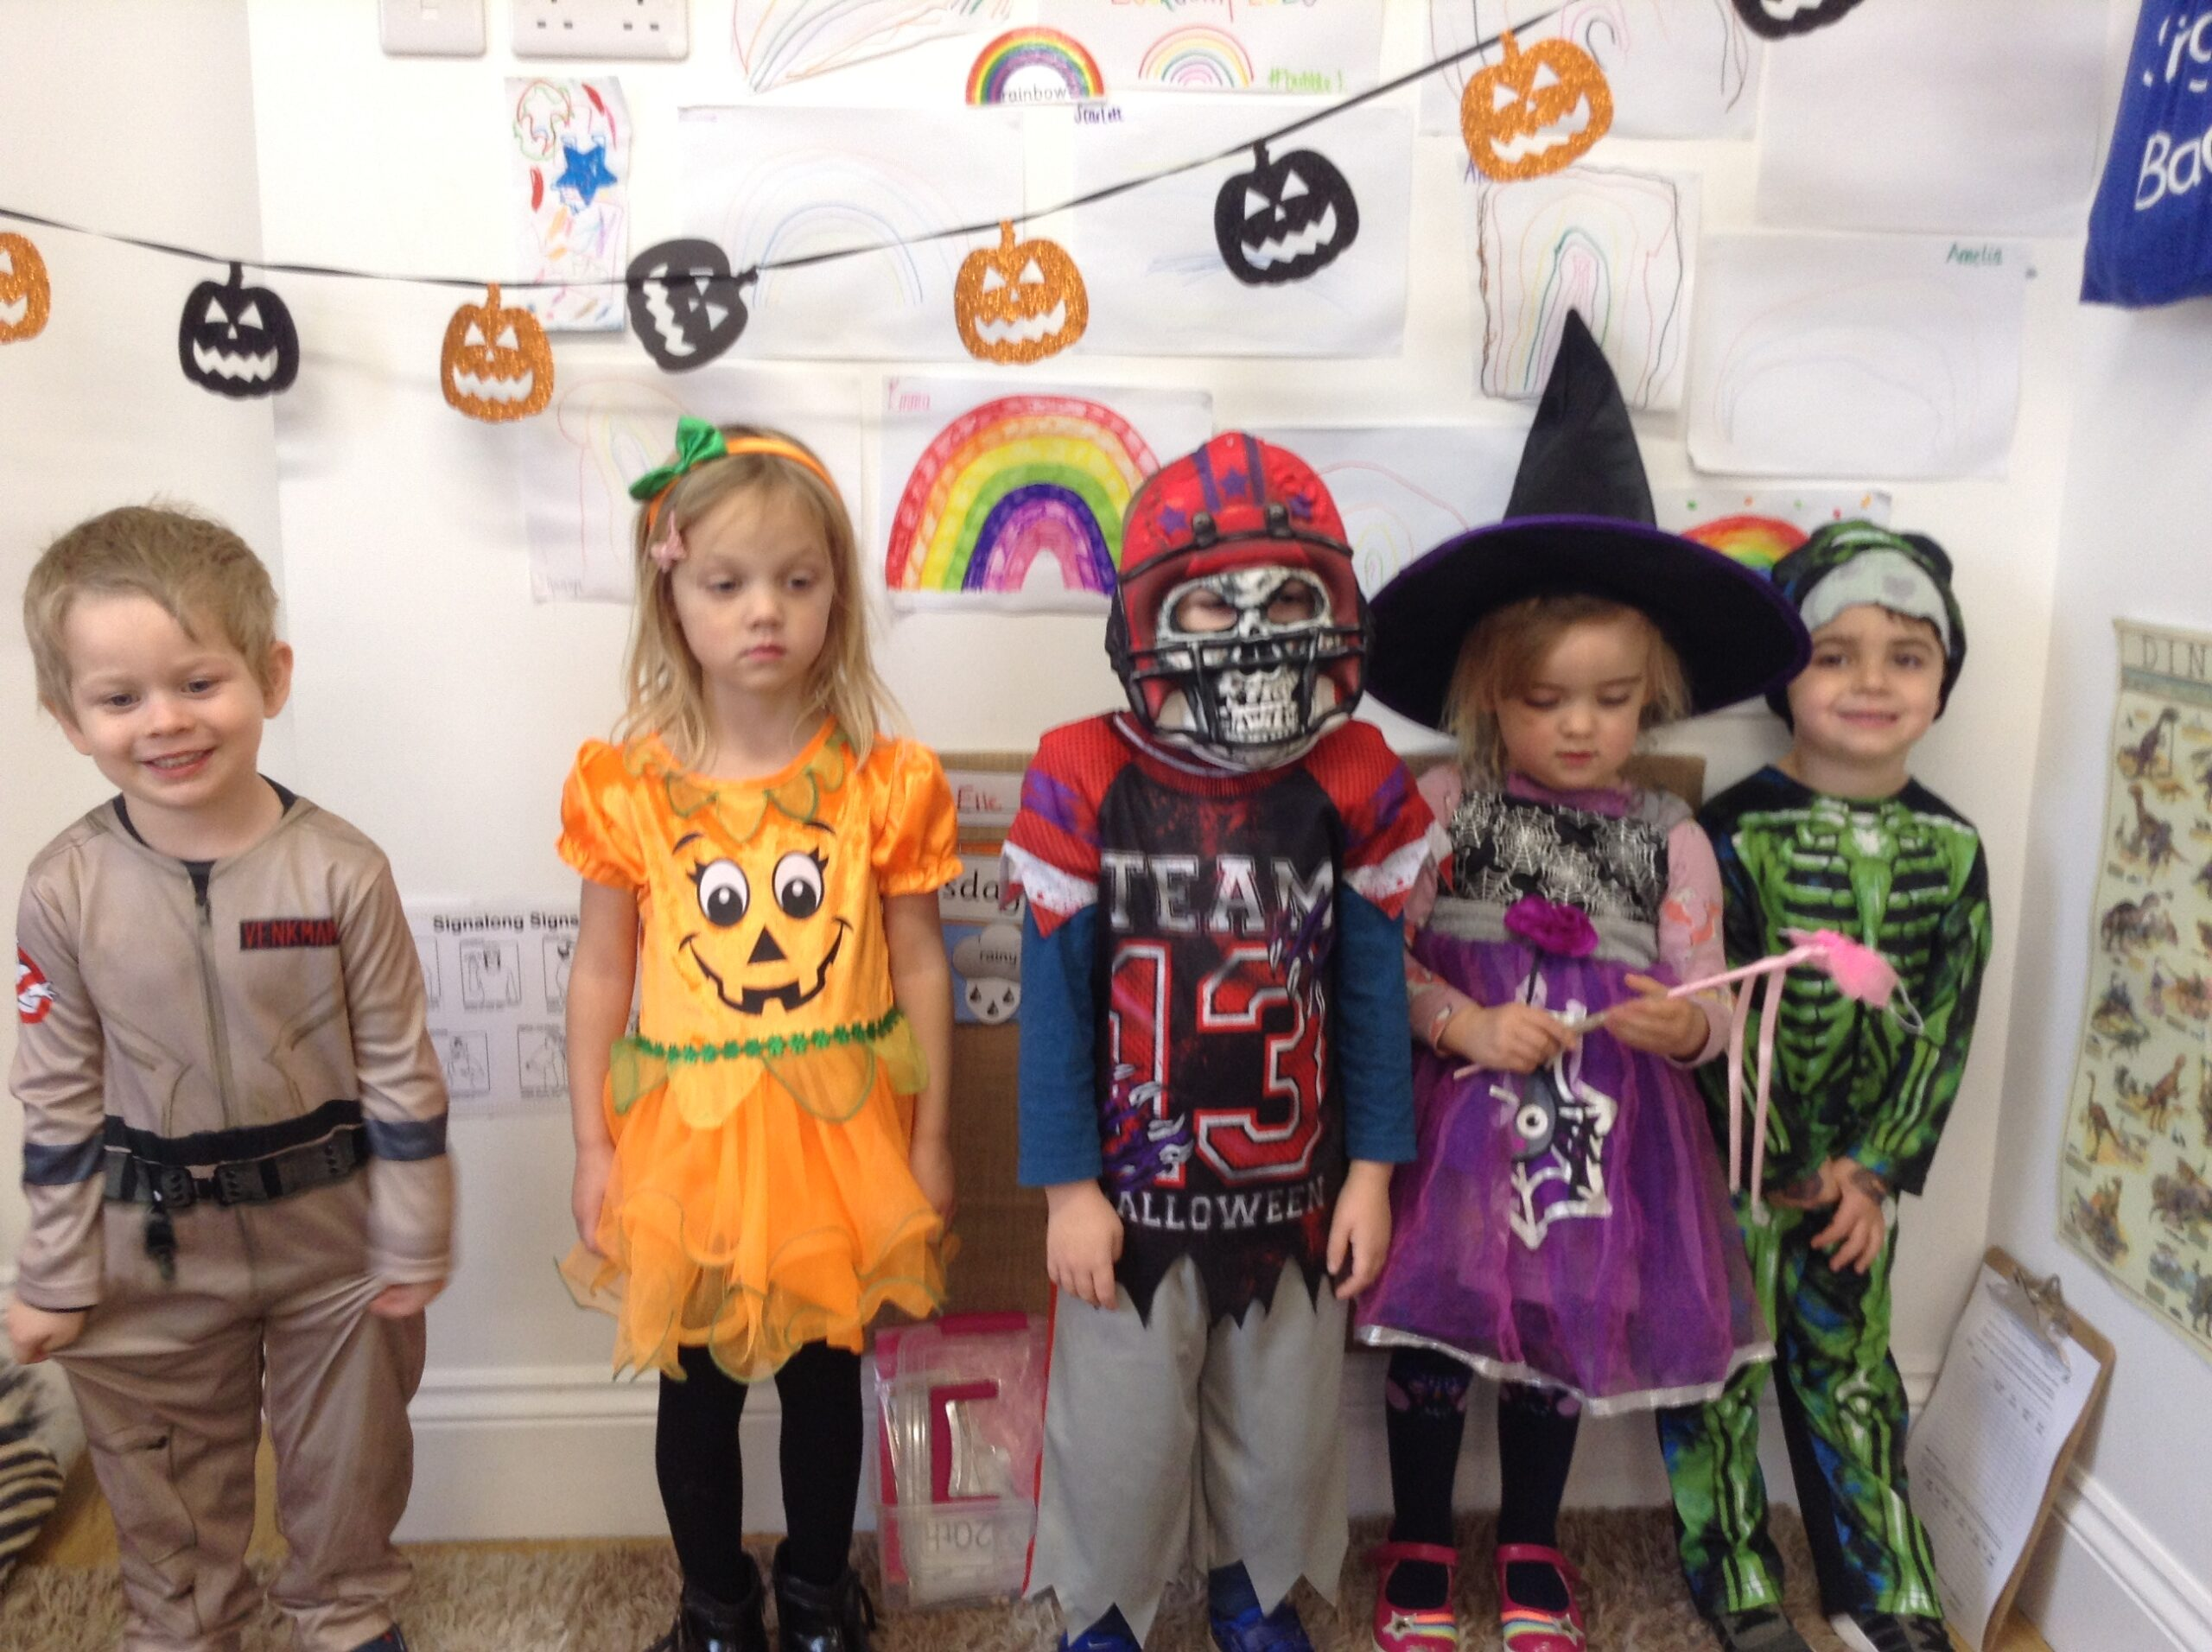 Preschool are enjoying dressing up as their favourite spooky characters for halloween